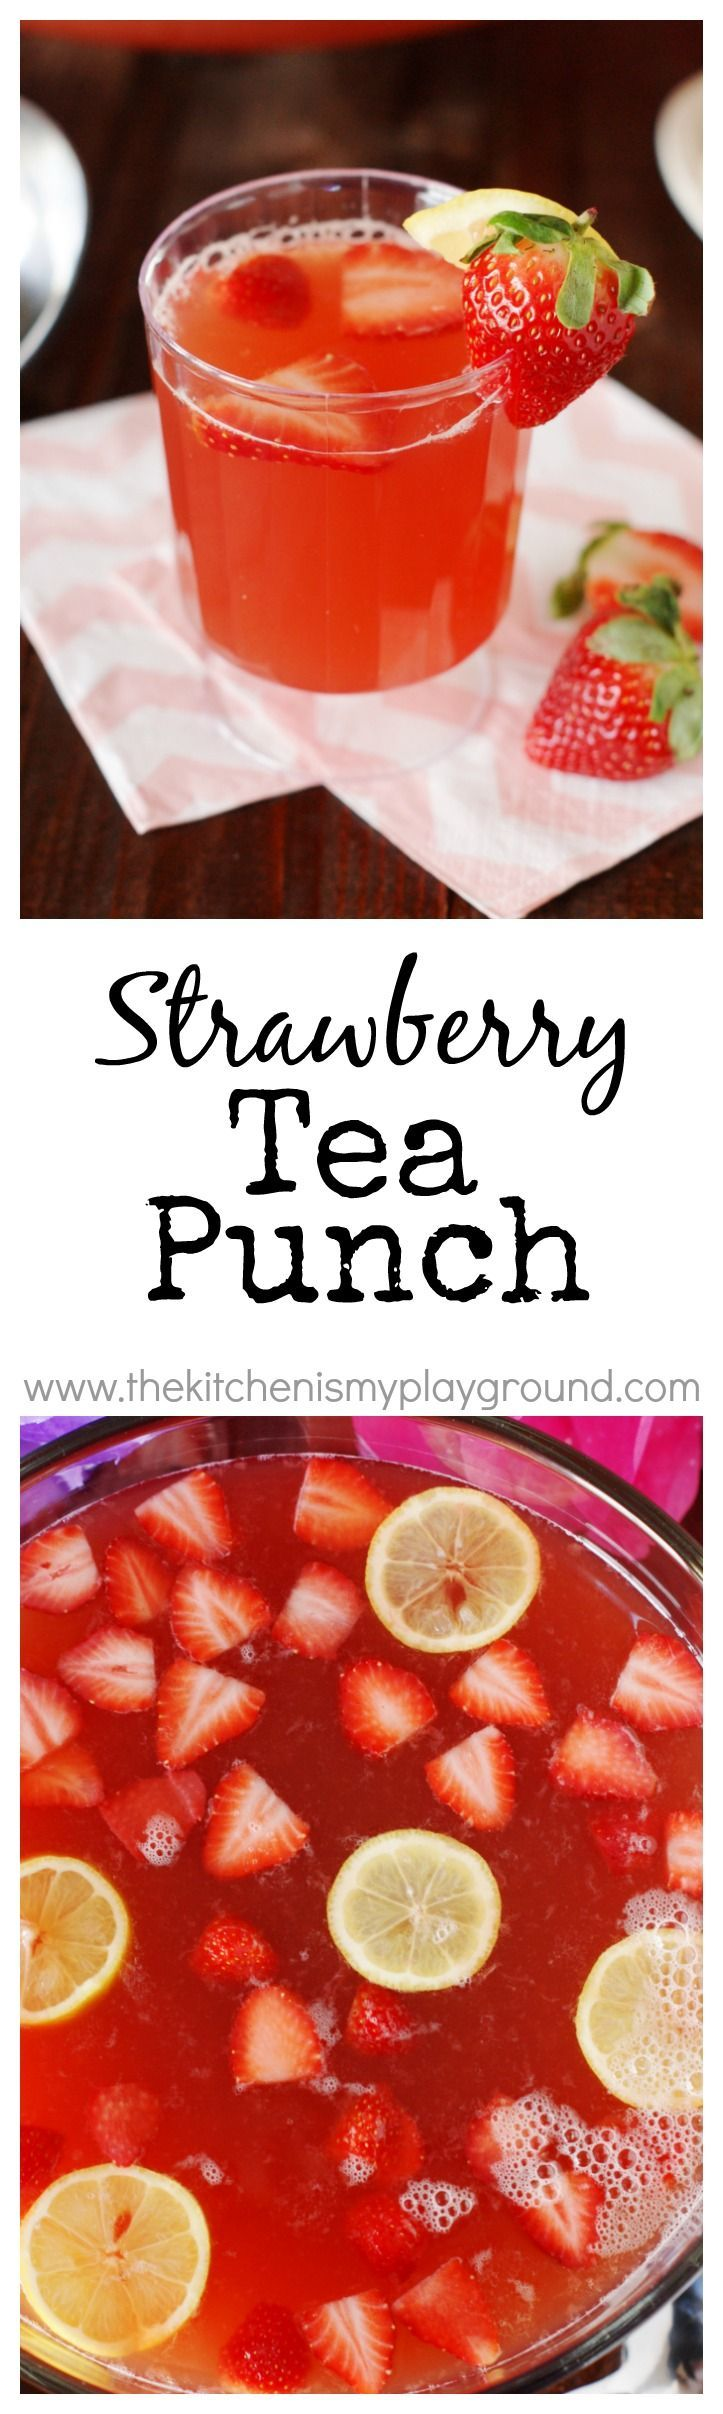 Strawberry Tea Punch ~ A amazingly delicious, crowd-pleasing punch!  Perfect for a tea party, bridal shower, or brunch.  #LiptonTeaTime sponsored   http://www.thekitchenismyplayground.com